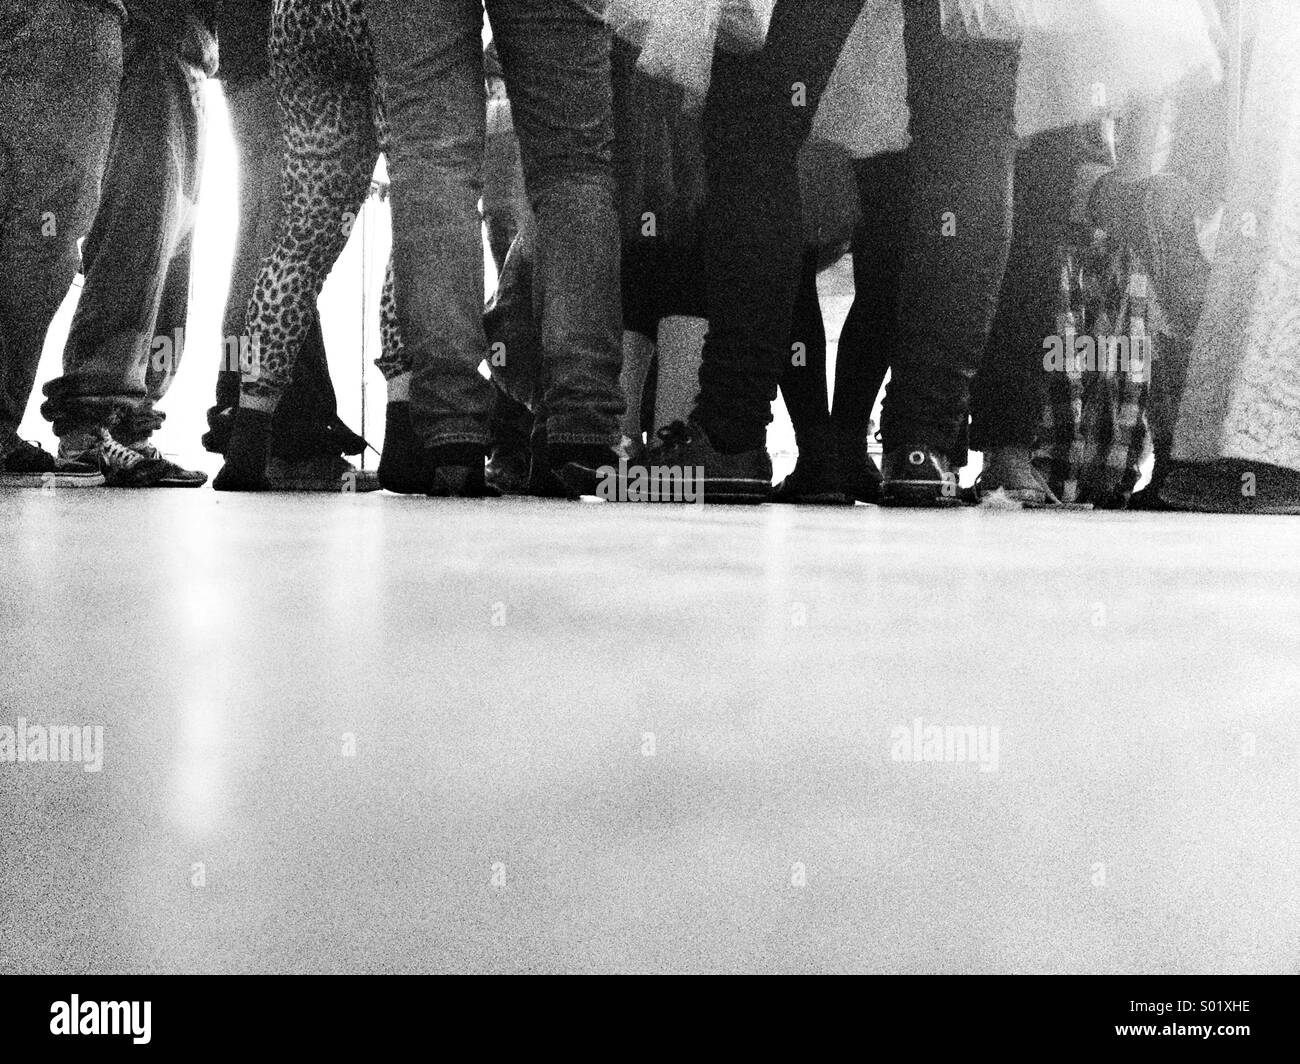 People gathering view of legs - Stock Image